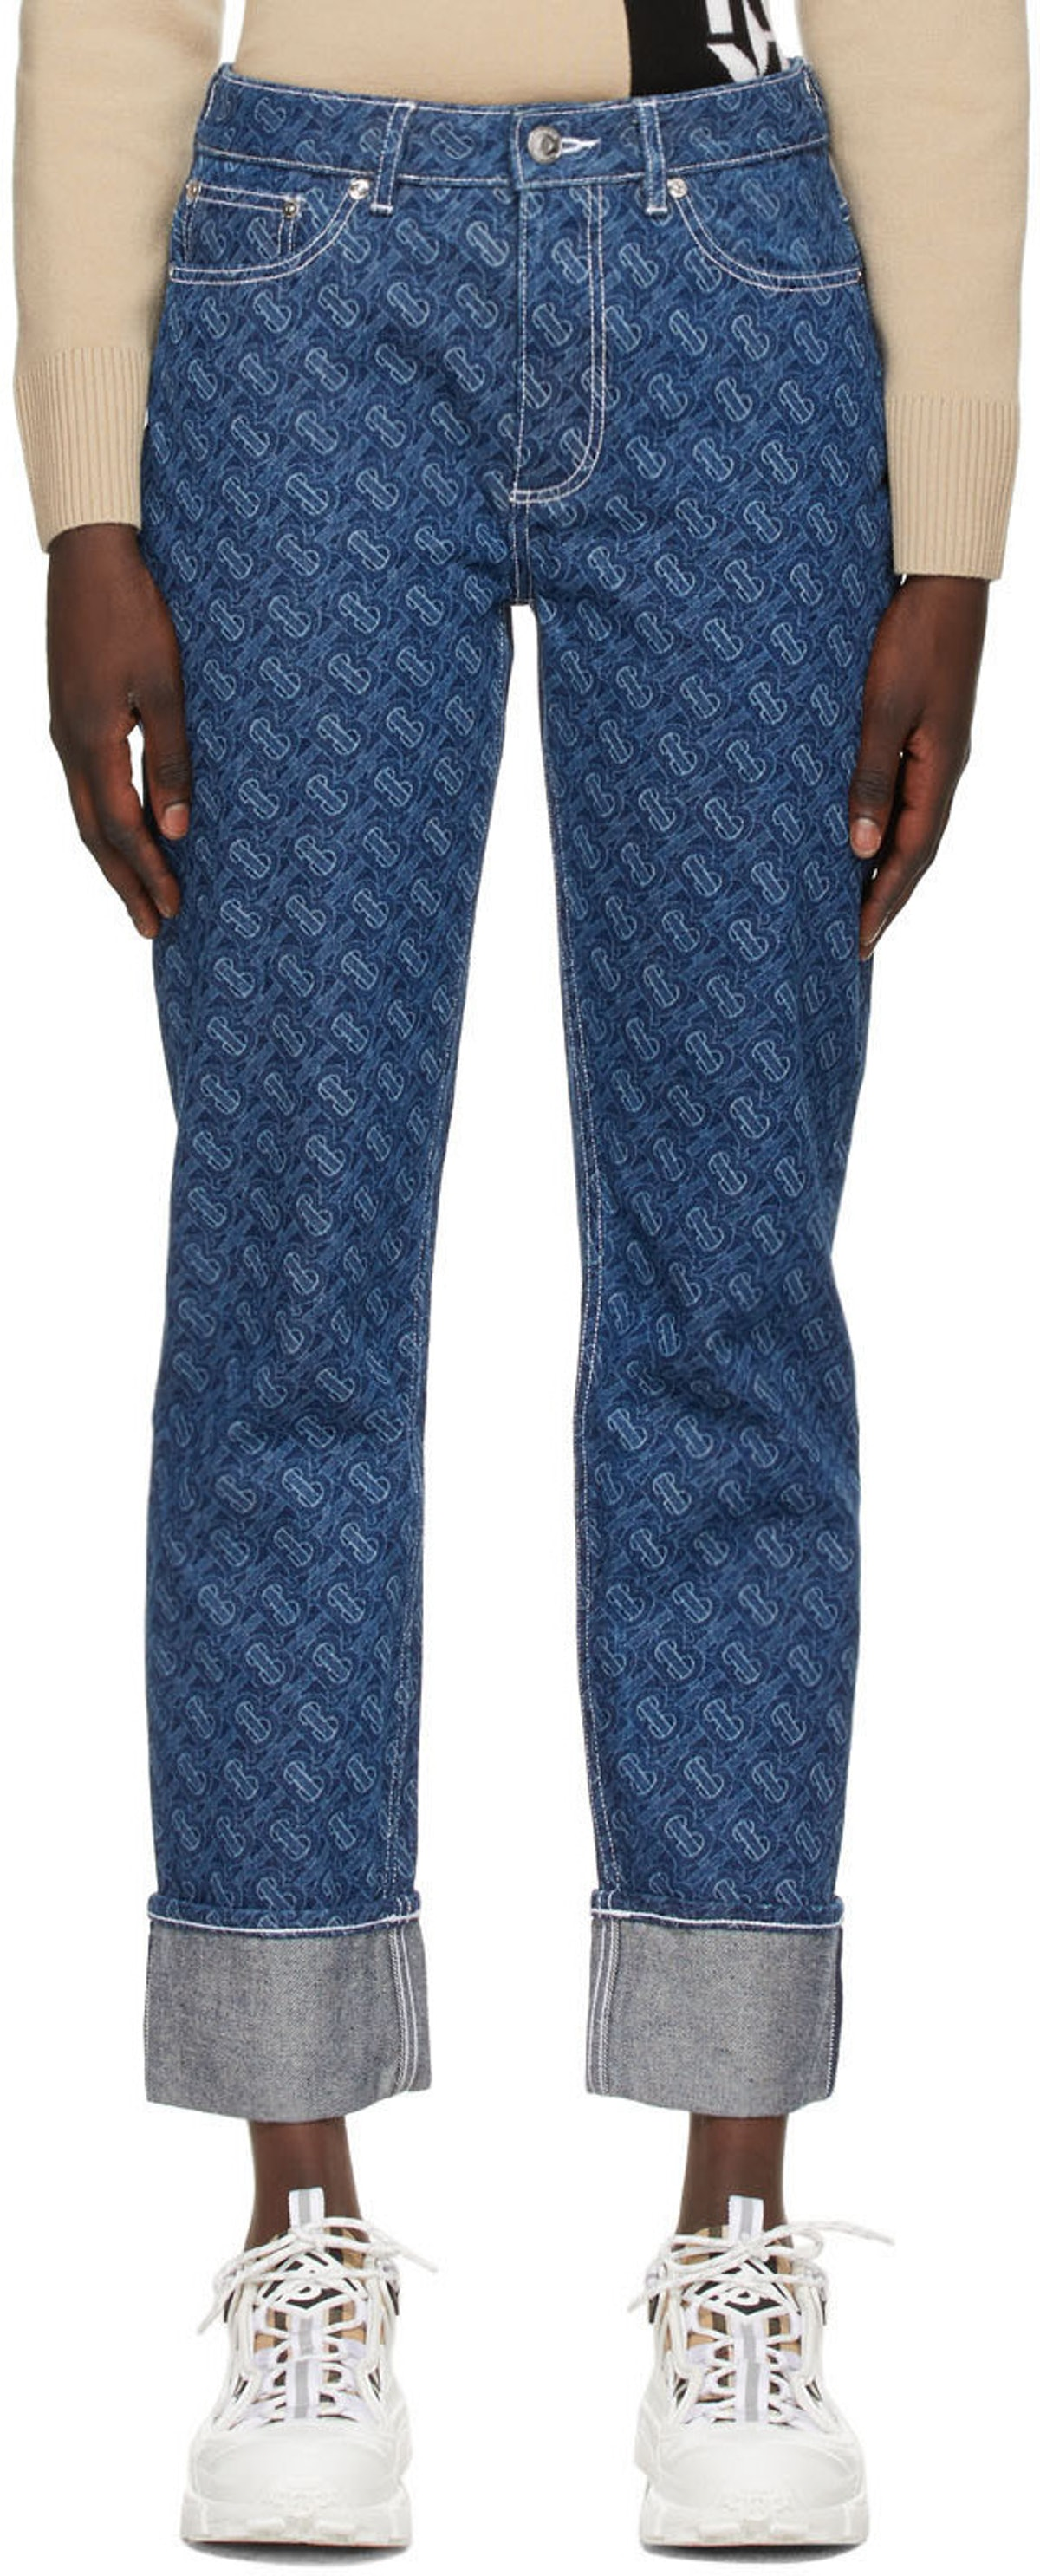 Blue TB Print Jeans from Burberry, available to shop via SSENSE.